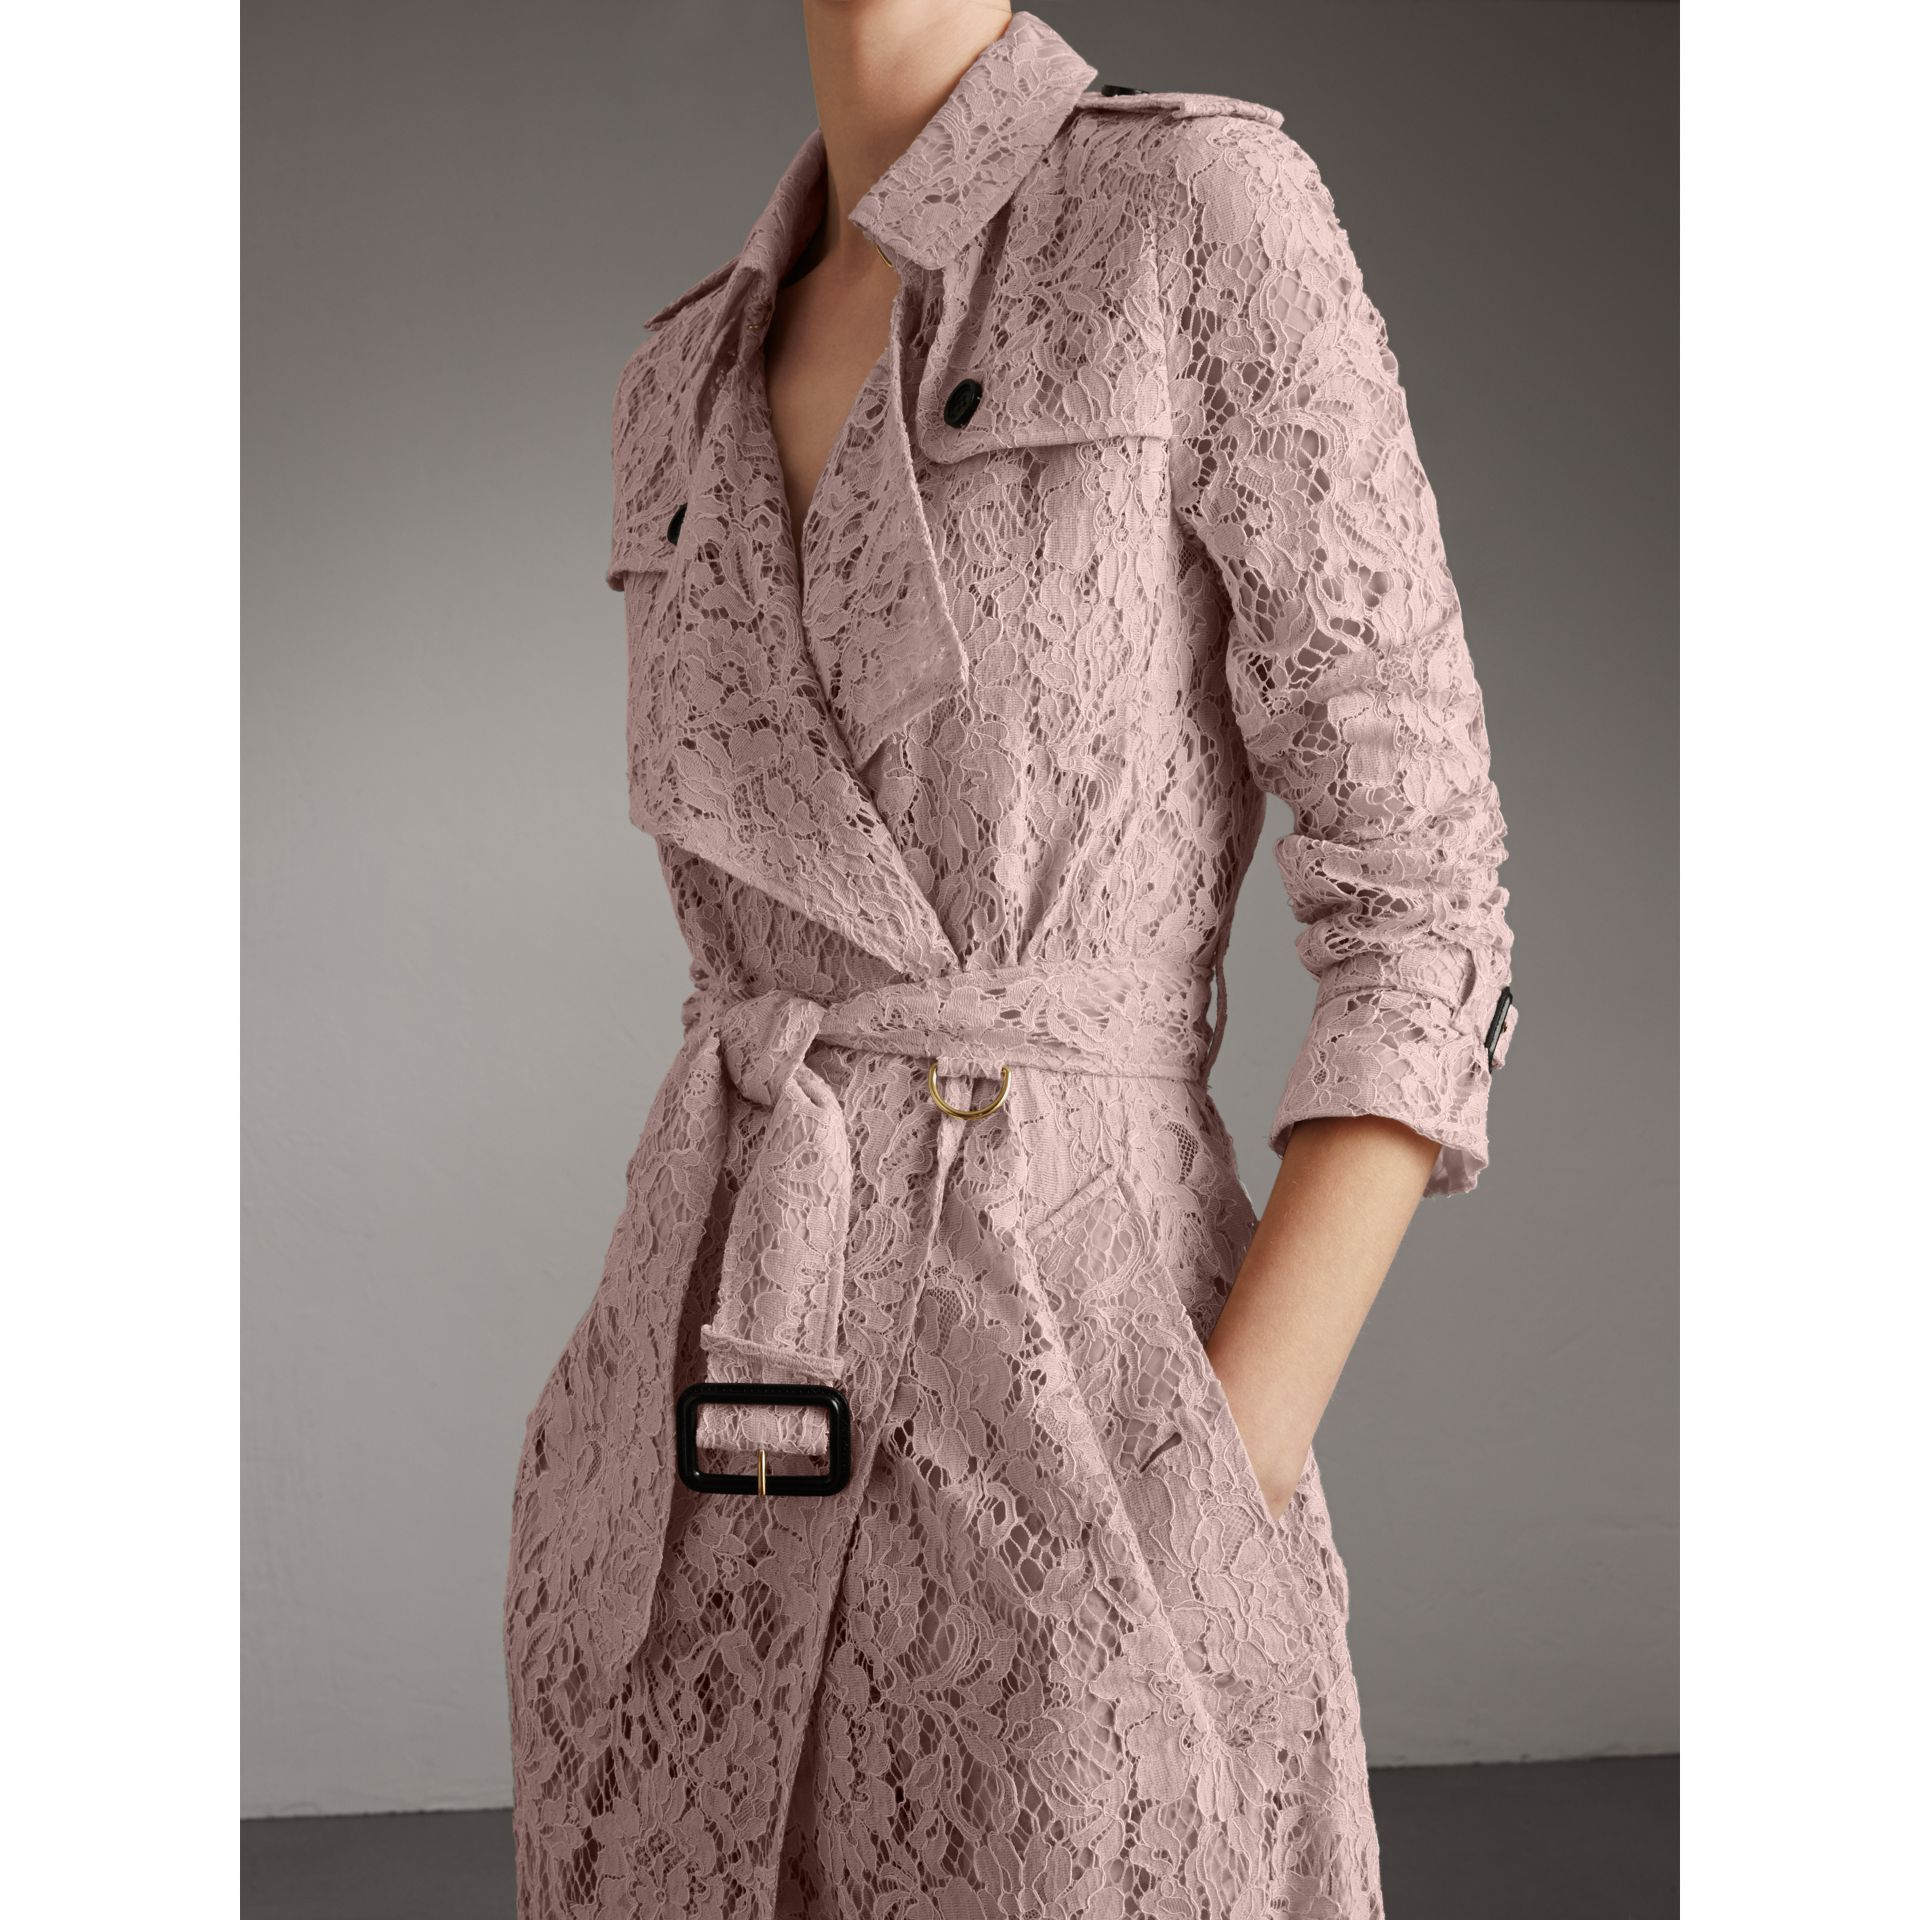 Macramé Lace Wrap Trench Coat in Nude - Women | Burberry - gallery image 5